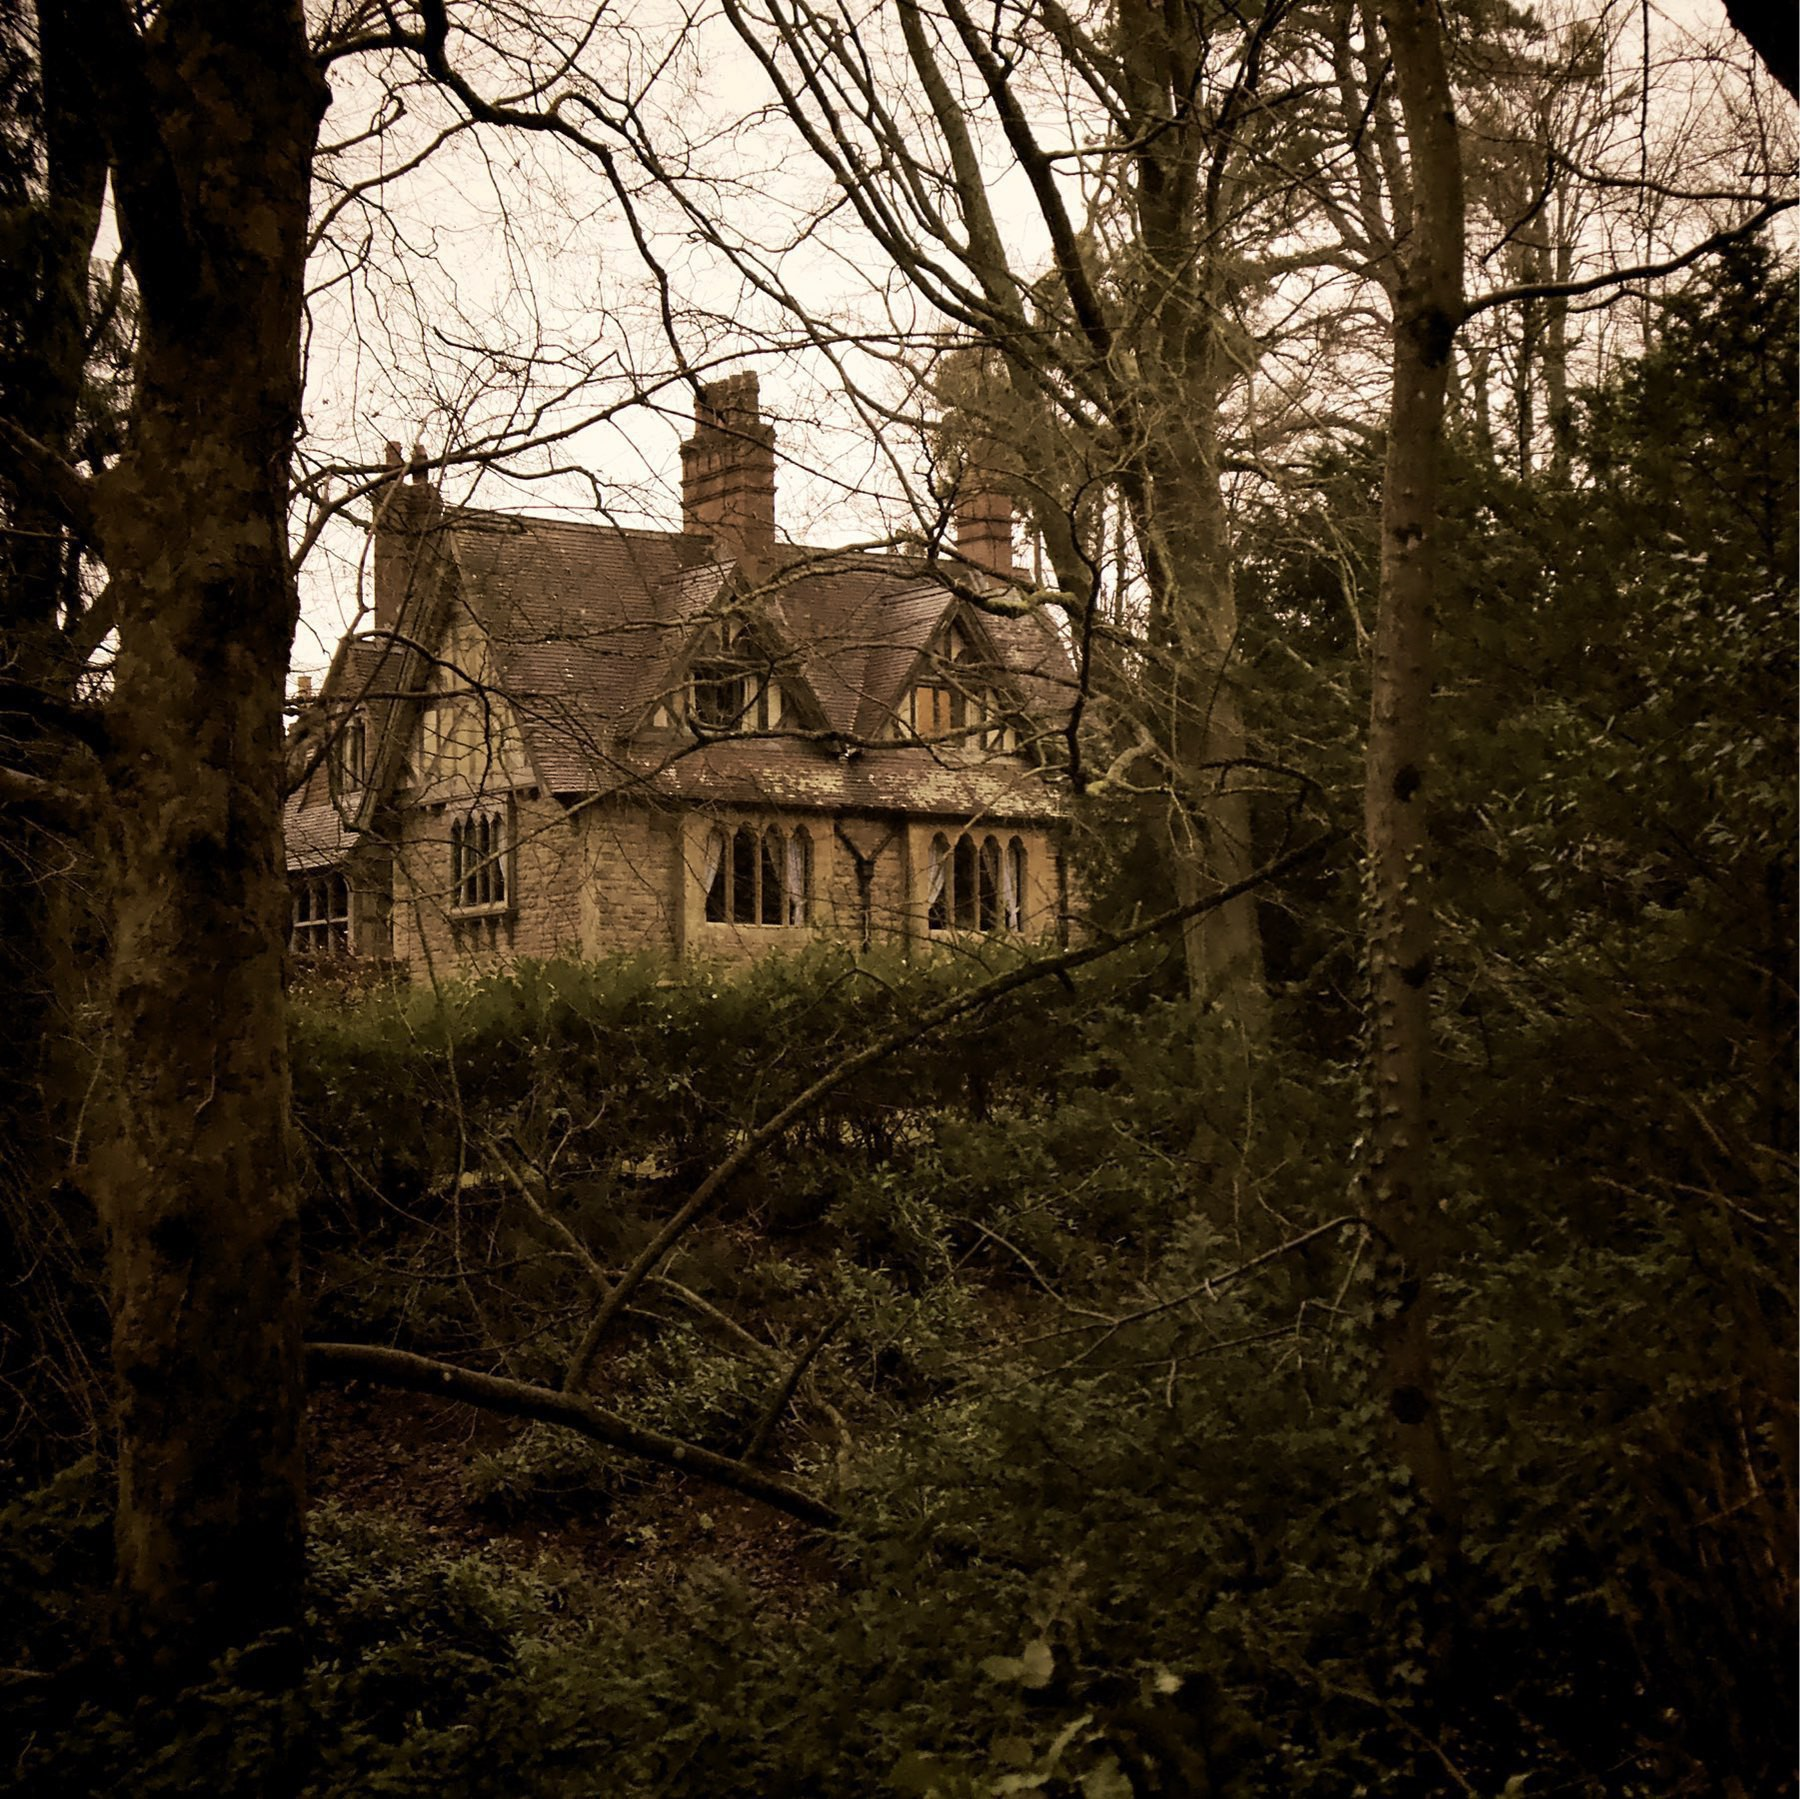 A house in the woods on the Tyntsfield estate